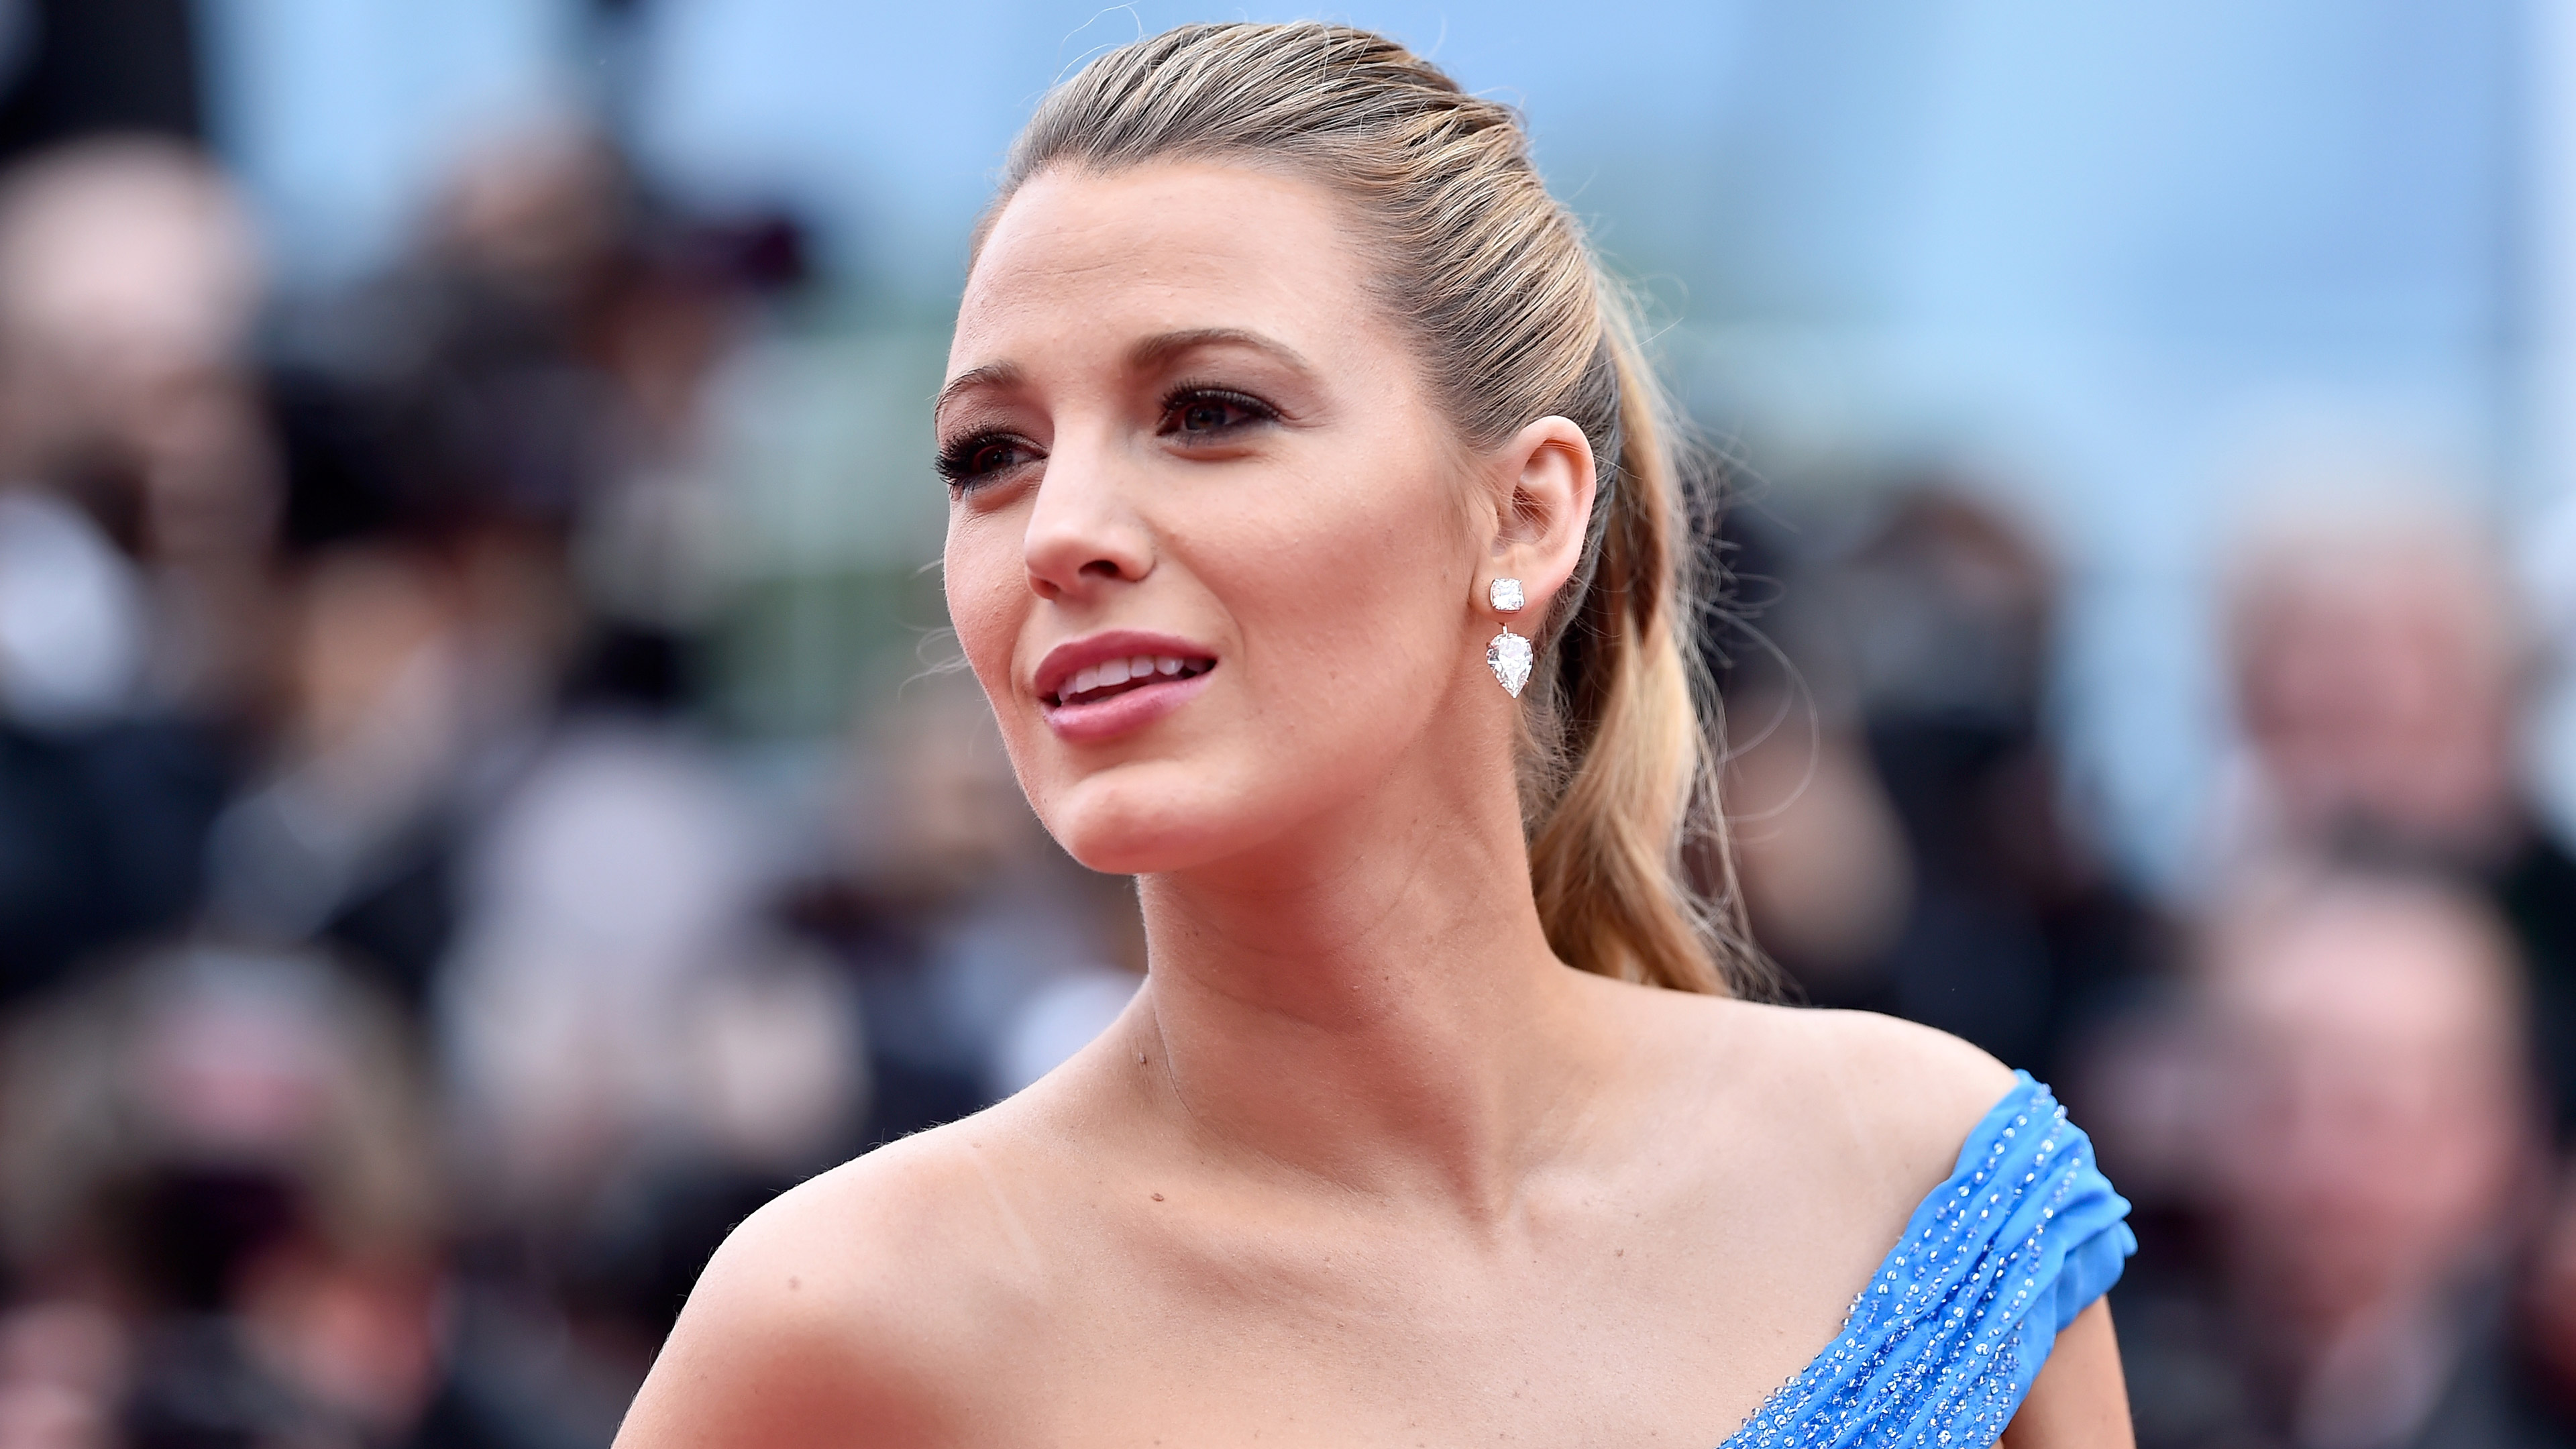 blake lively 4k, hd celebrities, 4k wallpapers, images, backgrounds